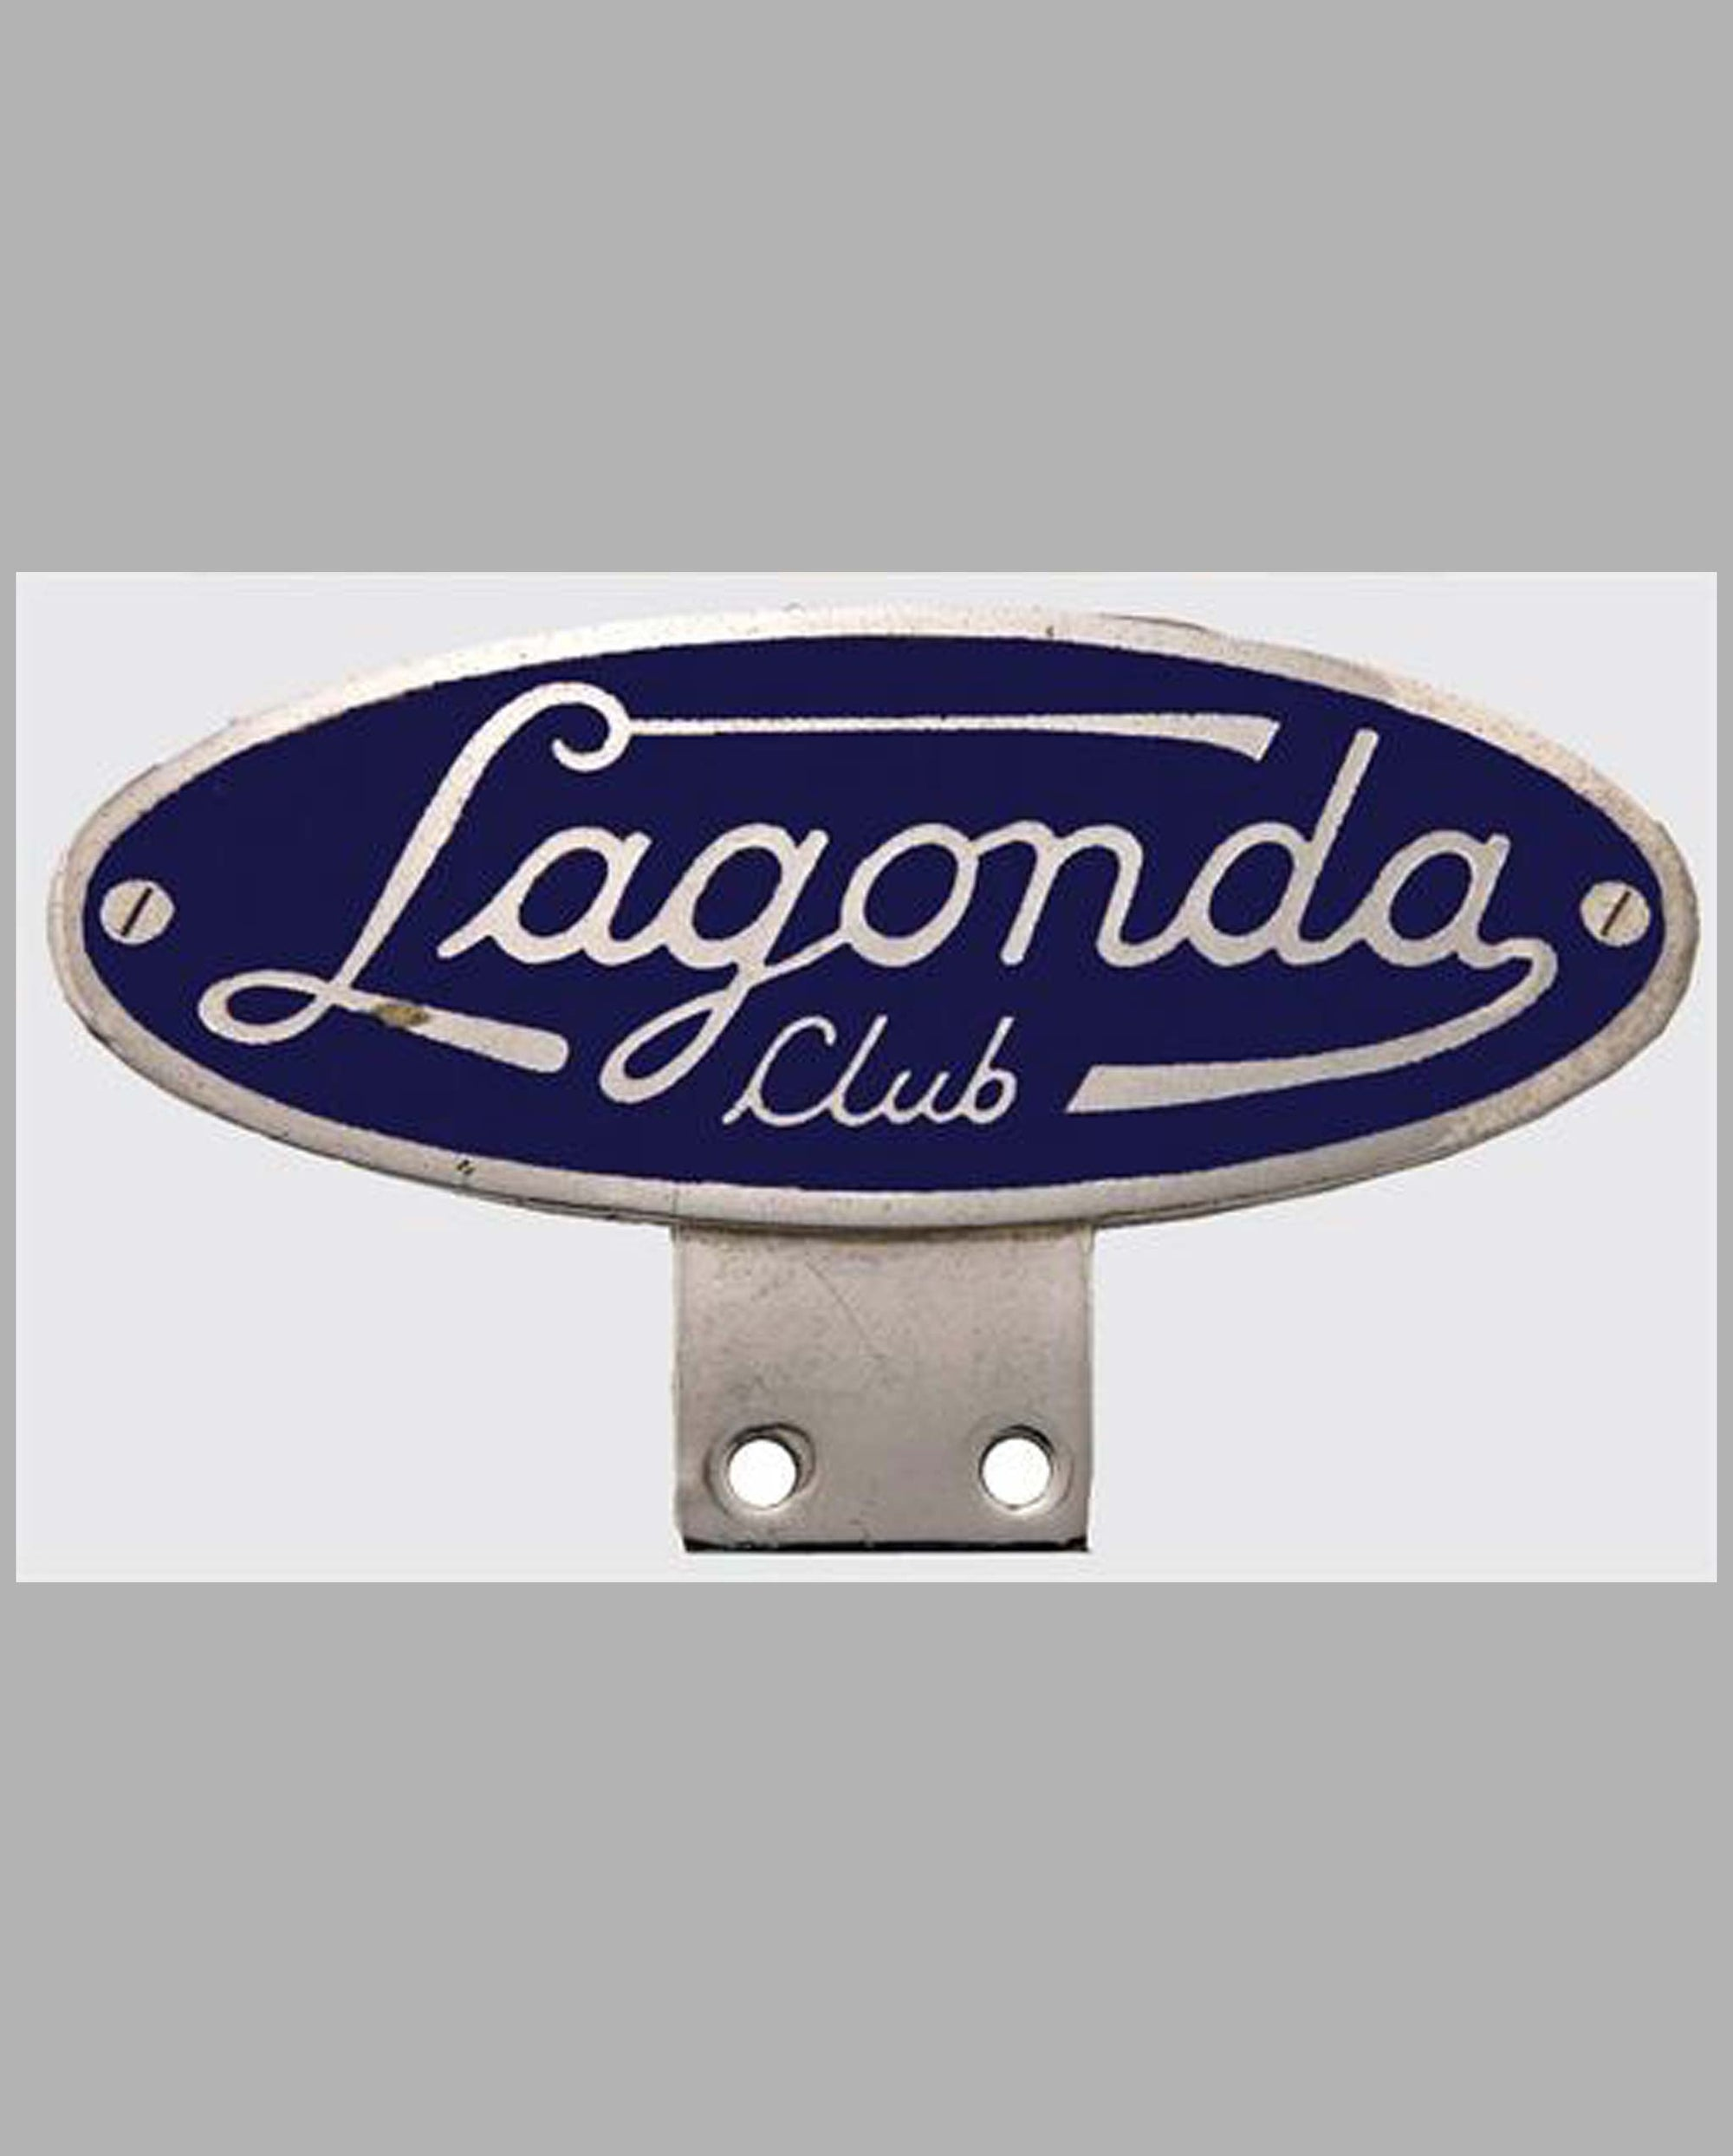 Lagonda Club bar badge, U.K.